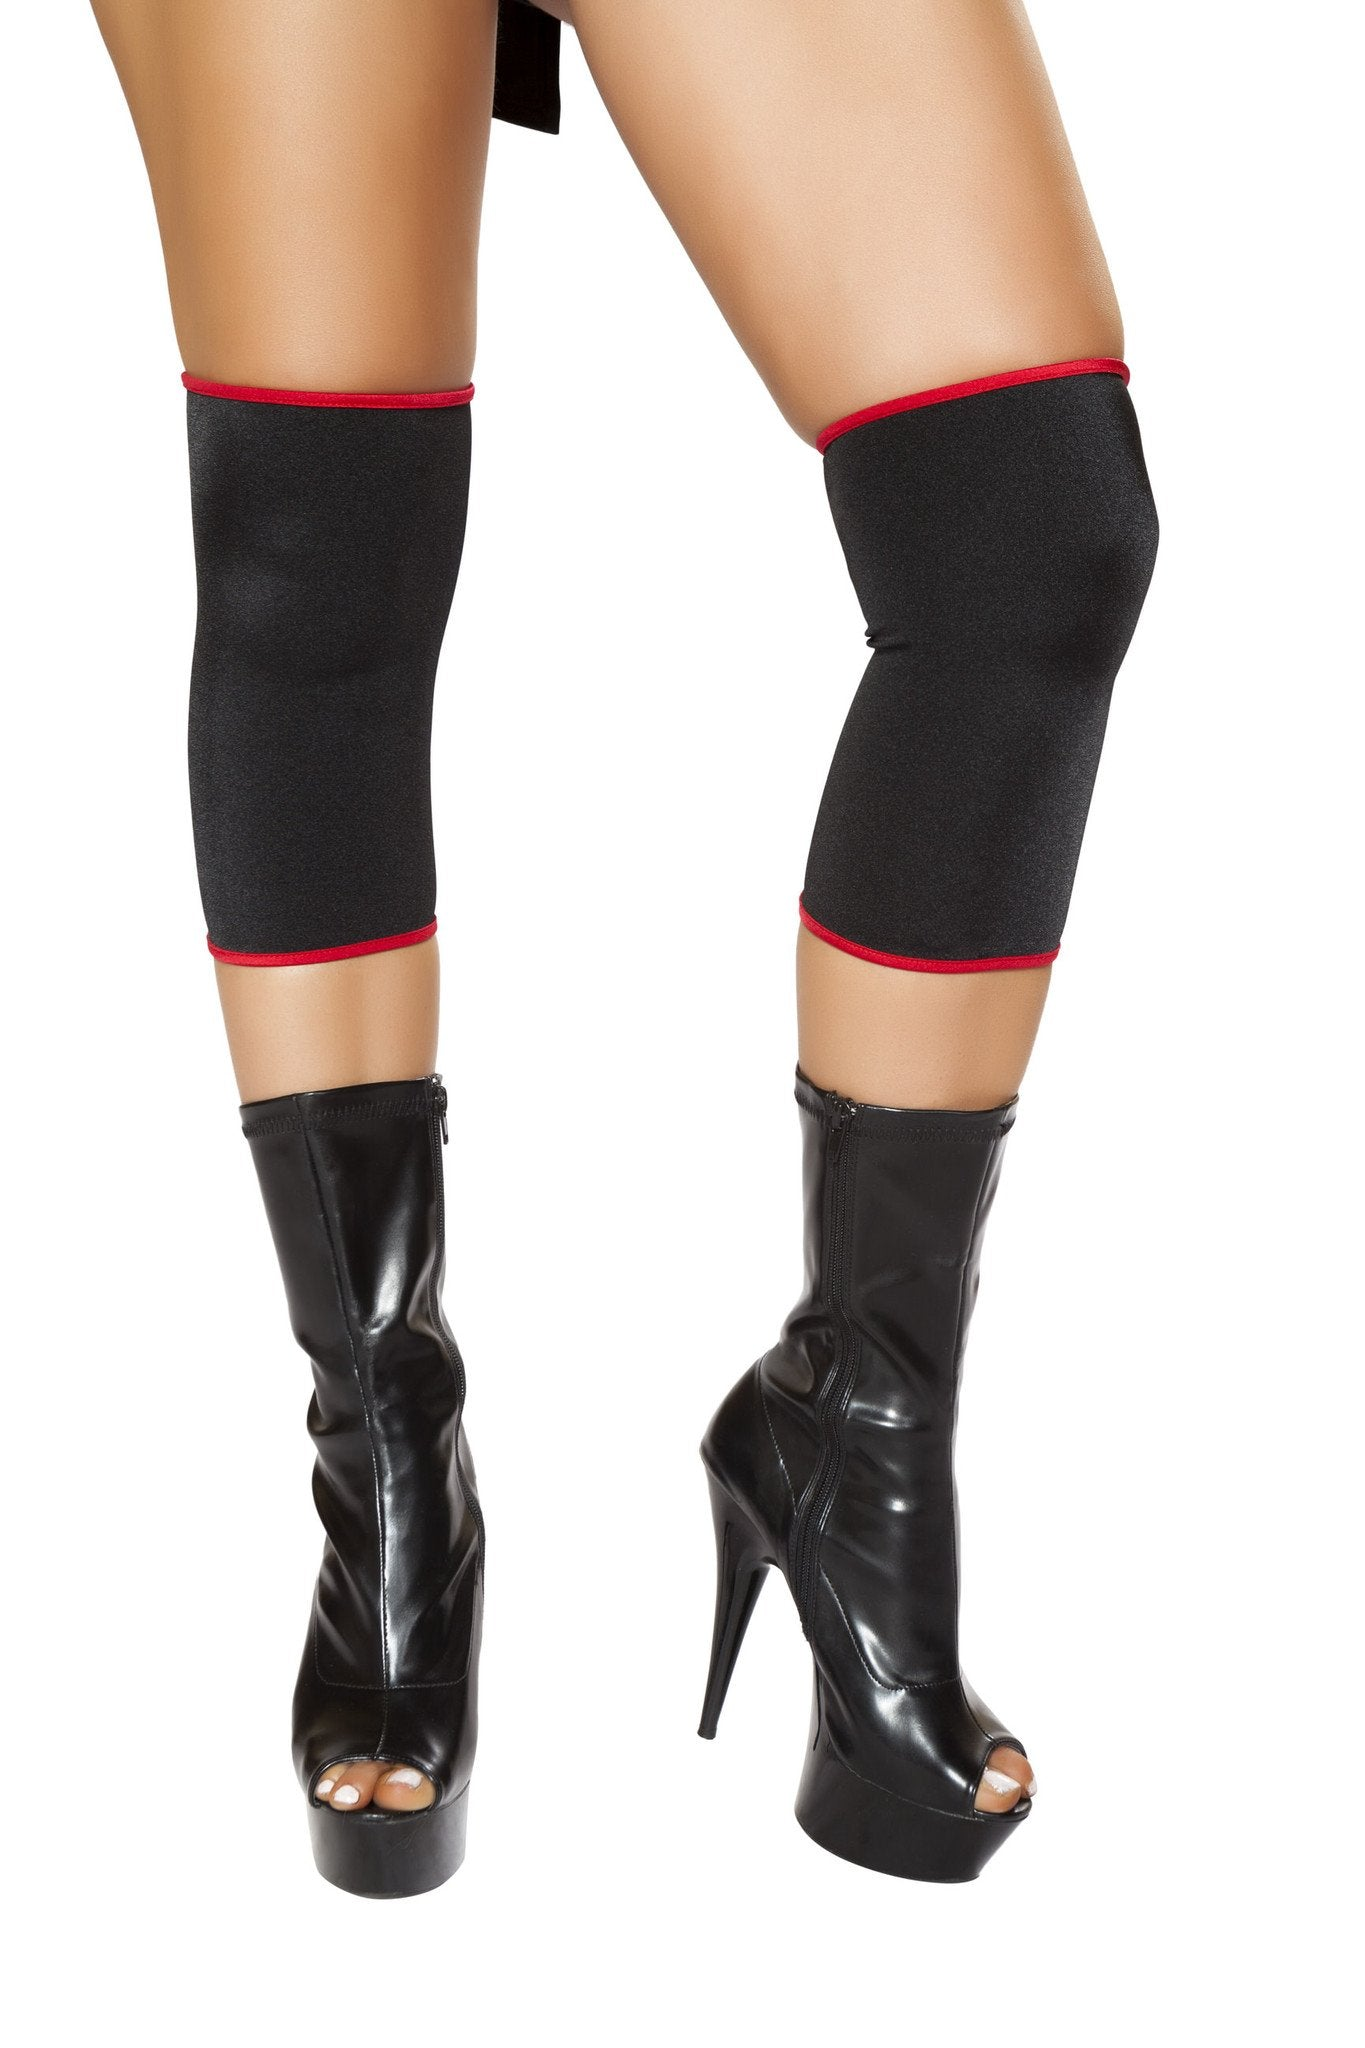 Buy 4698 - Black/Red Ninja Knee Pads from Rave Fix for $7.50 with Same Day Shipping Designed by Roma Costume 4698-AS-O/S